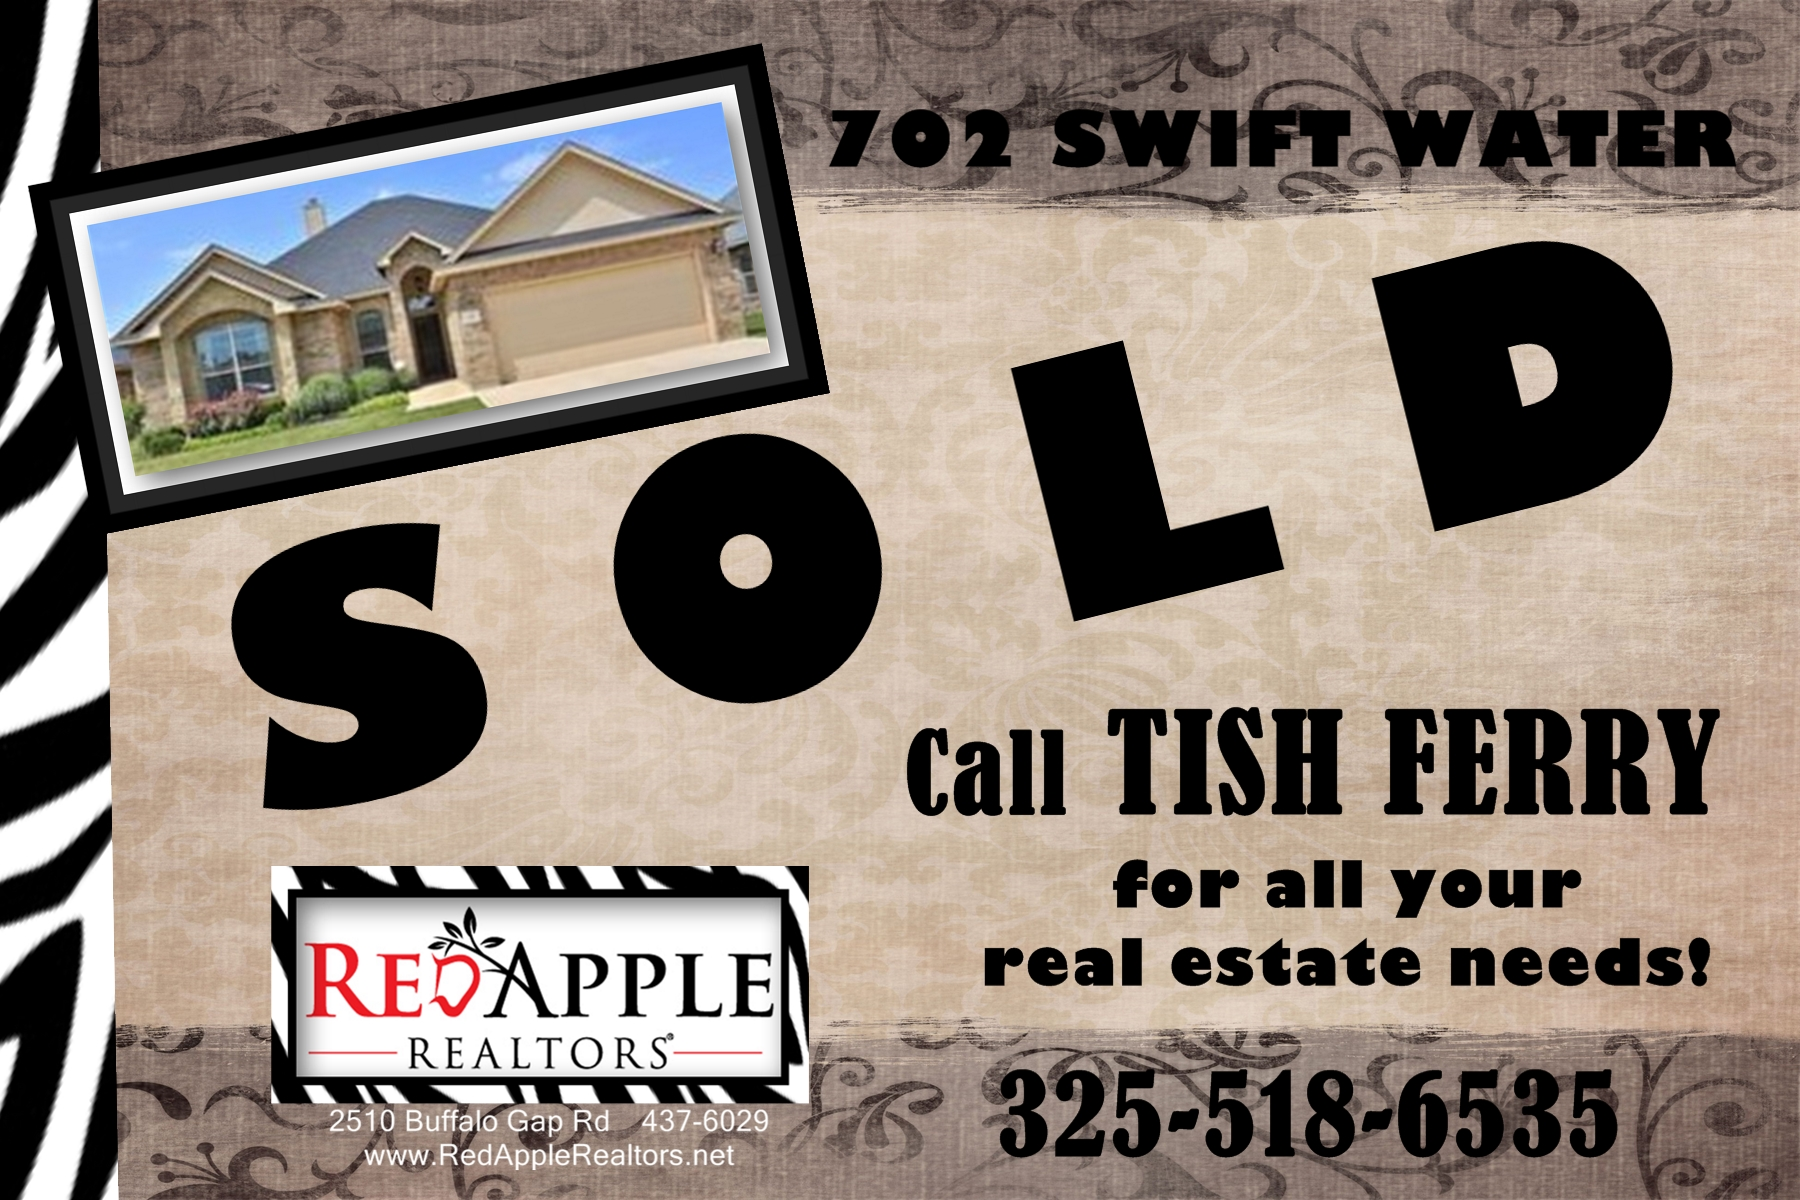 SWIFTWATER.SOLD.jpg